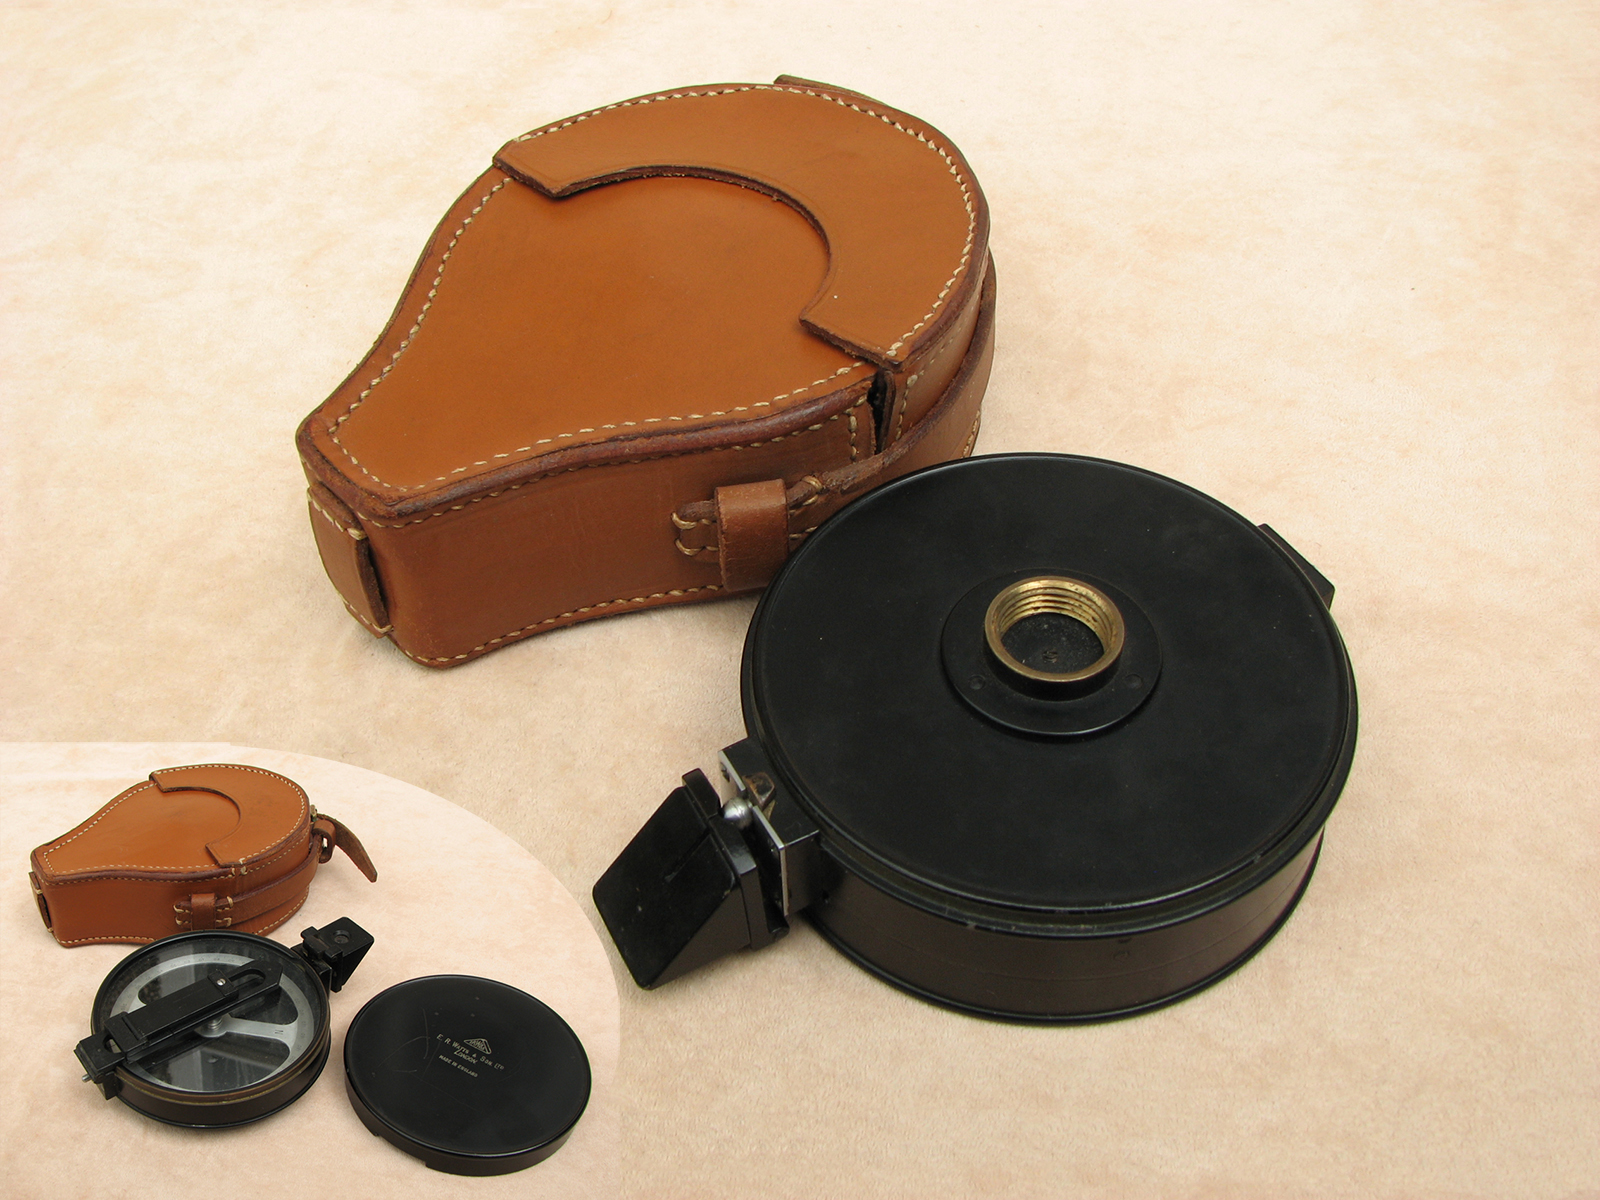 1920's Artillery compass by E.R. Watts & Son Ltd in leather case